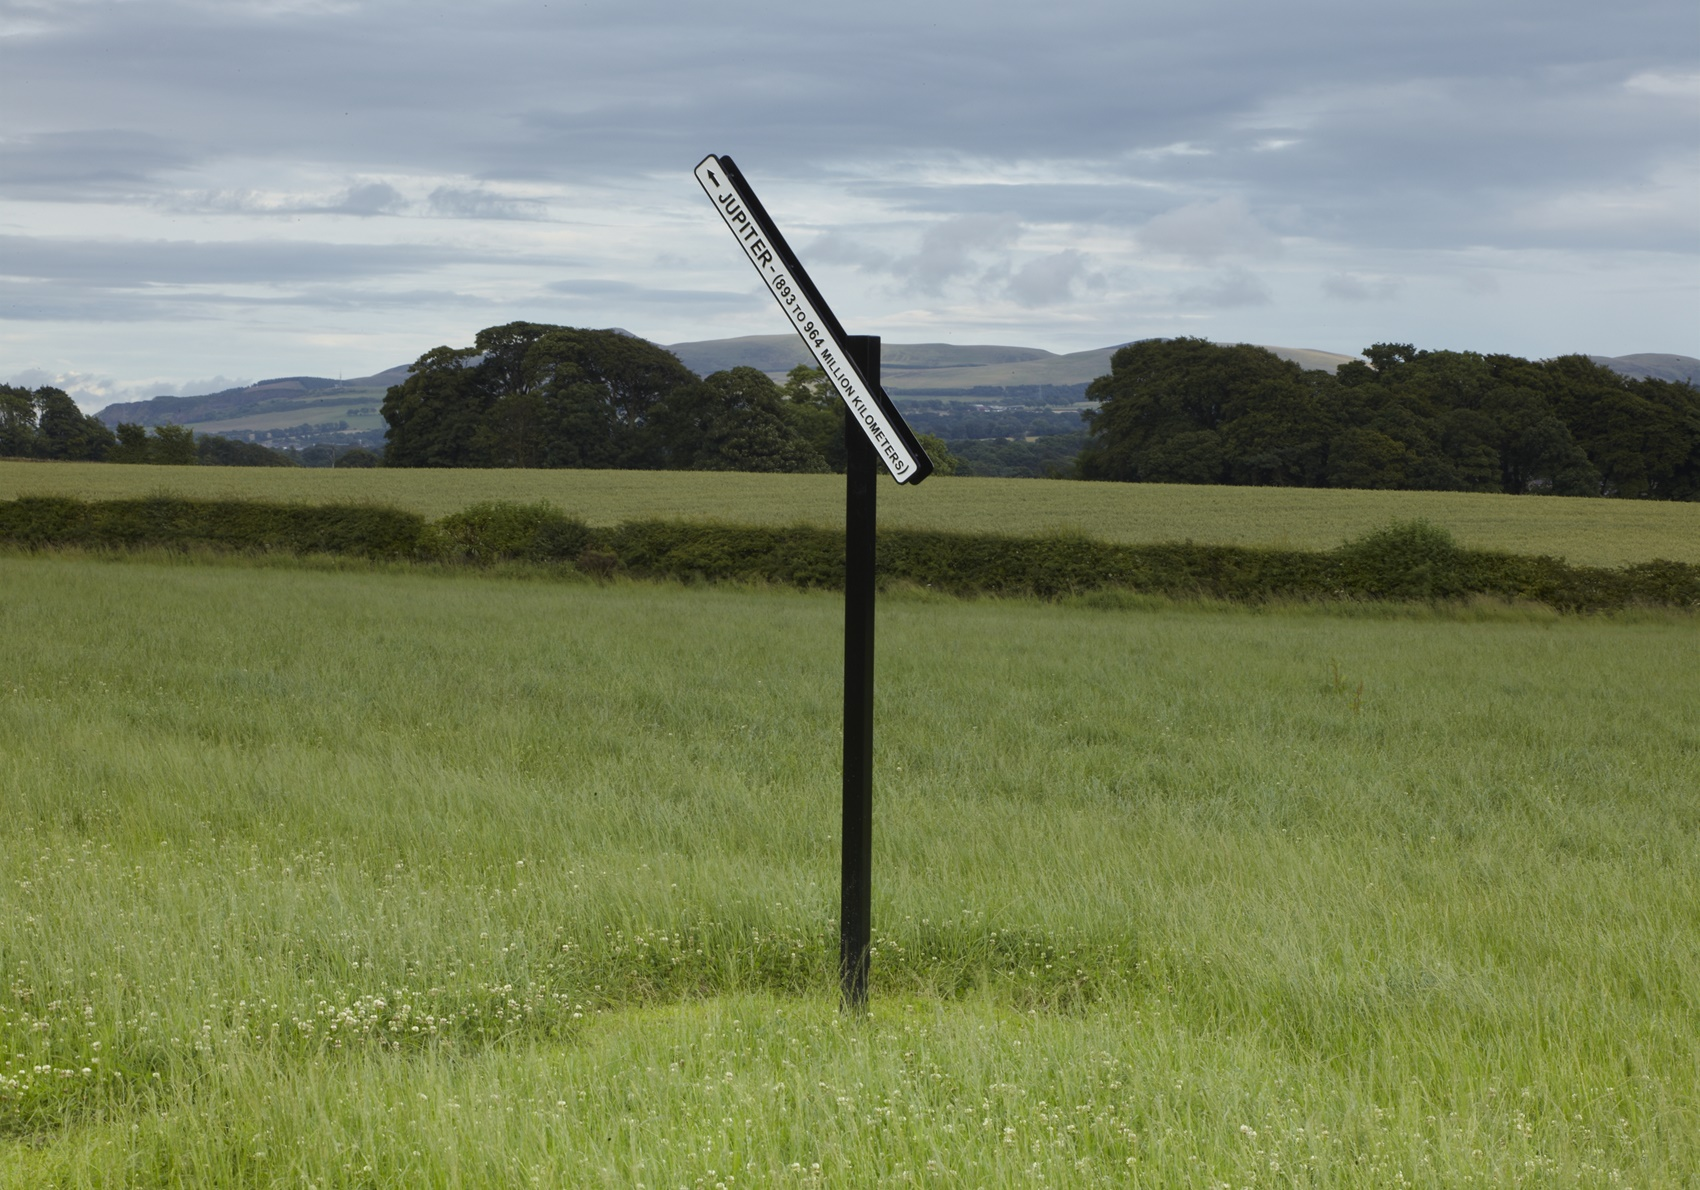 Peter Liversidge: Proposal 90, A Signpost To Jupiter